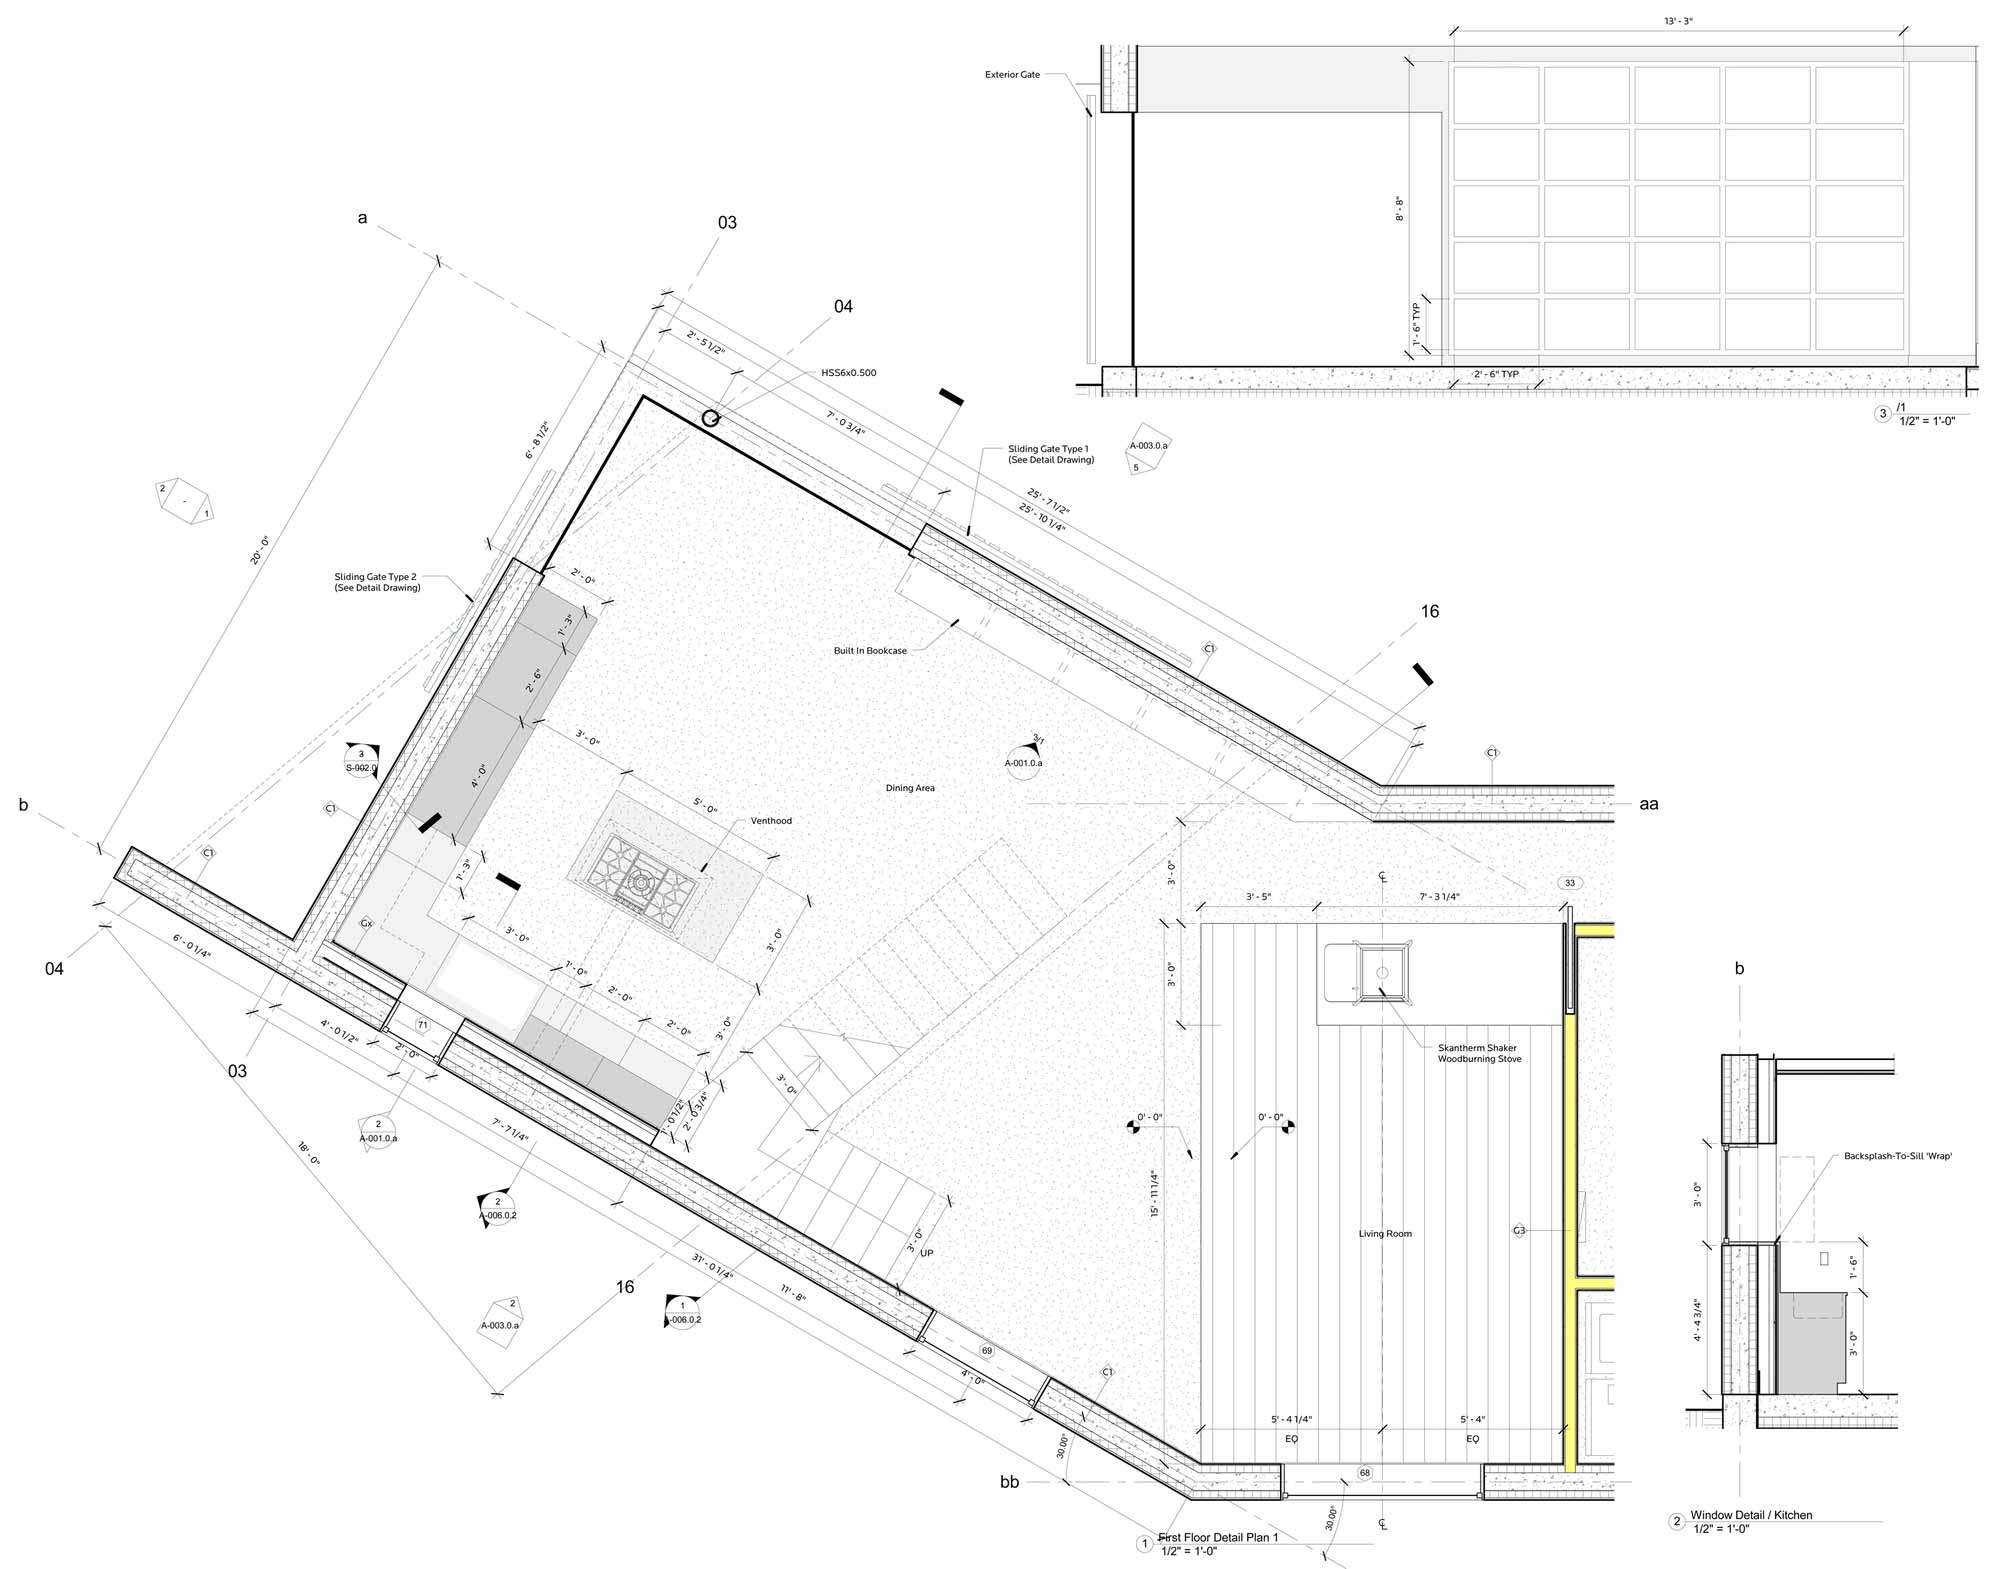 First Floor Plan, Dutchess House No. 1, New York by Grzywinski+Pons